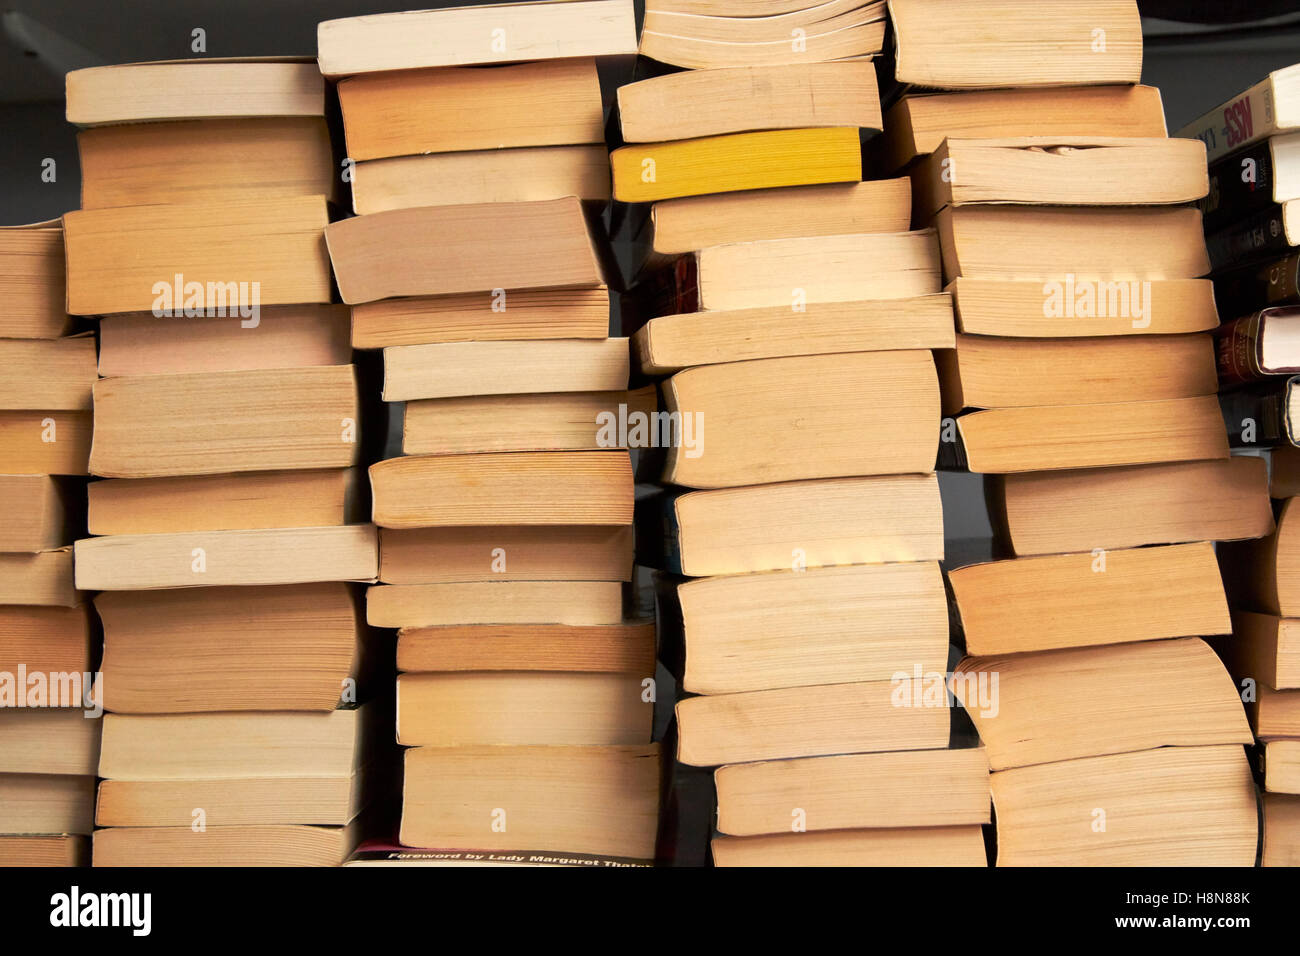 pile of stacks of used paperback books in the uk - Stock Image